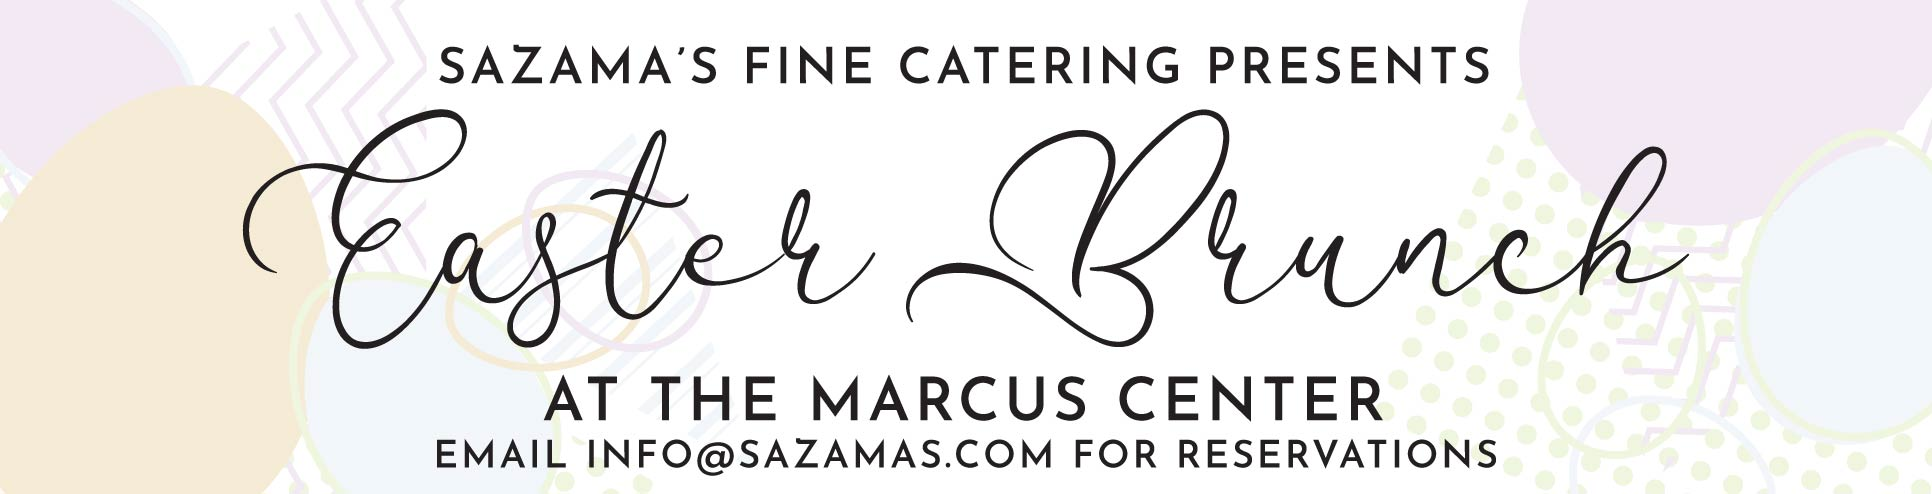 Sazama's Easter Brunch 2019 at the Marcus Center in Milwaukee